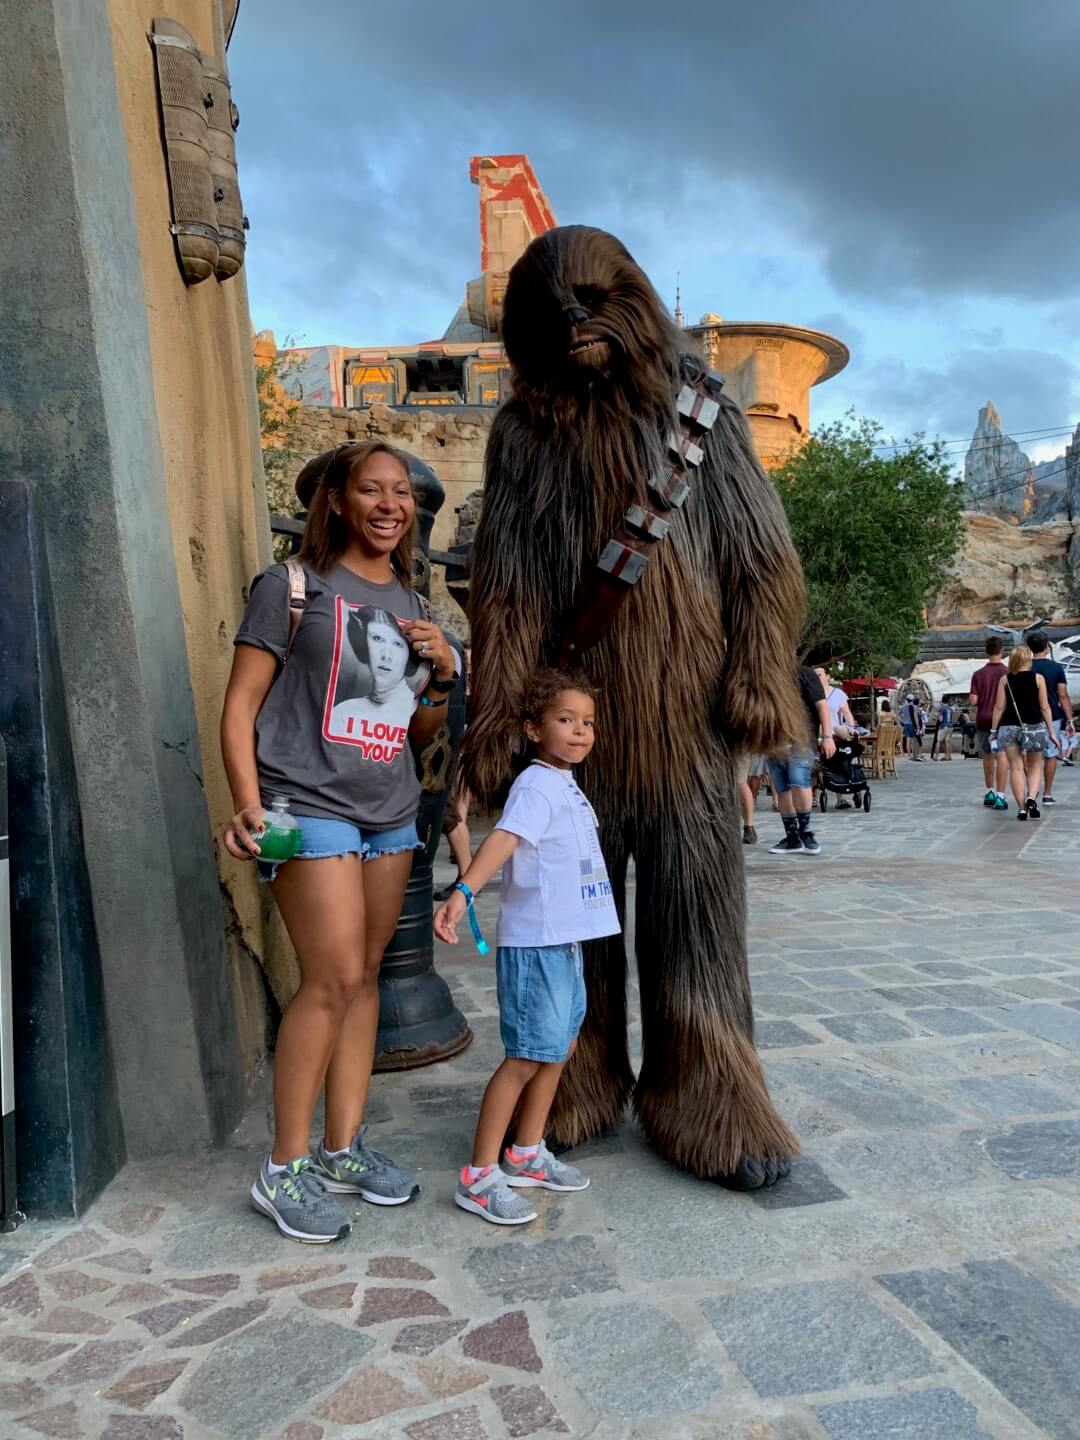 Chewbacca at Disney's Galaxy's Edge posing with mother and daughter